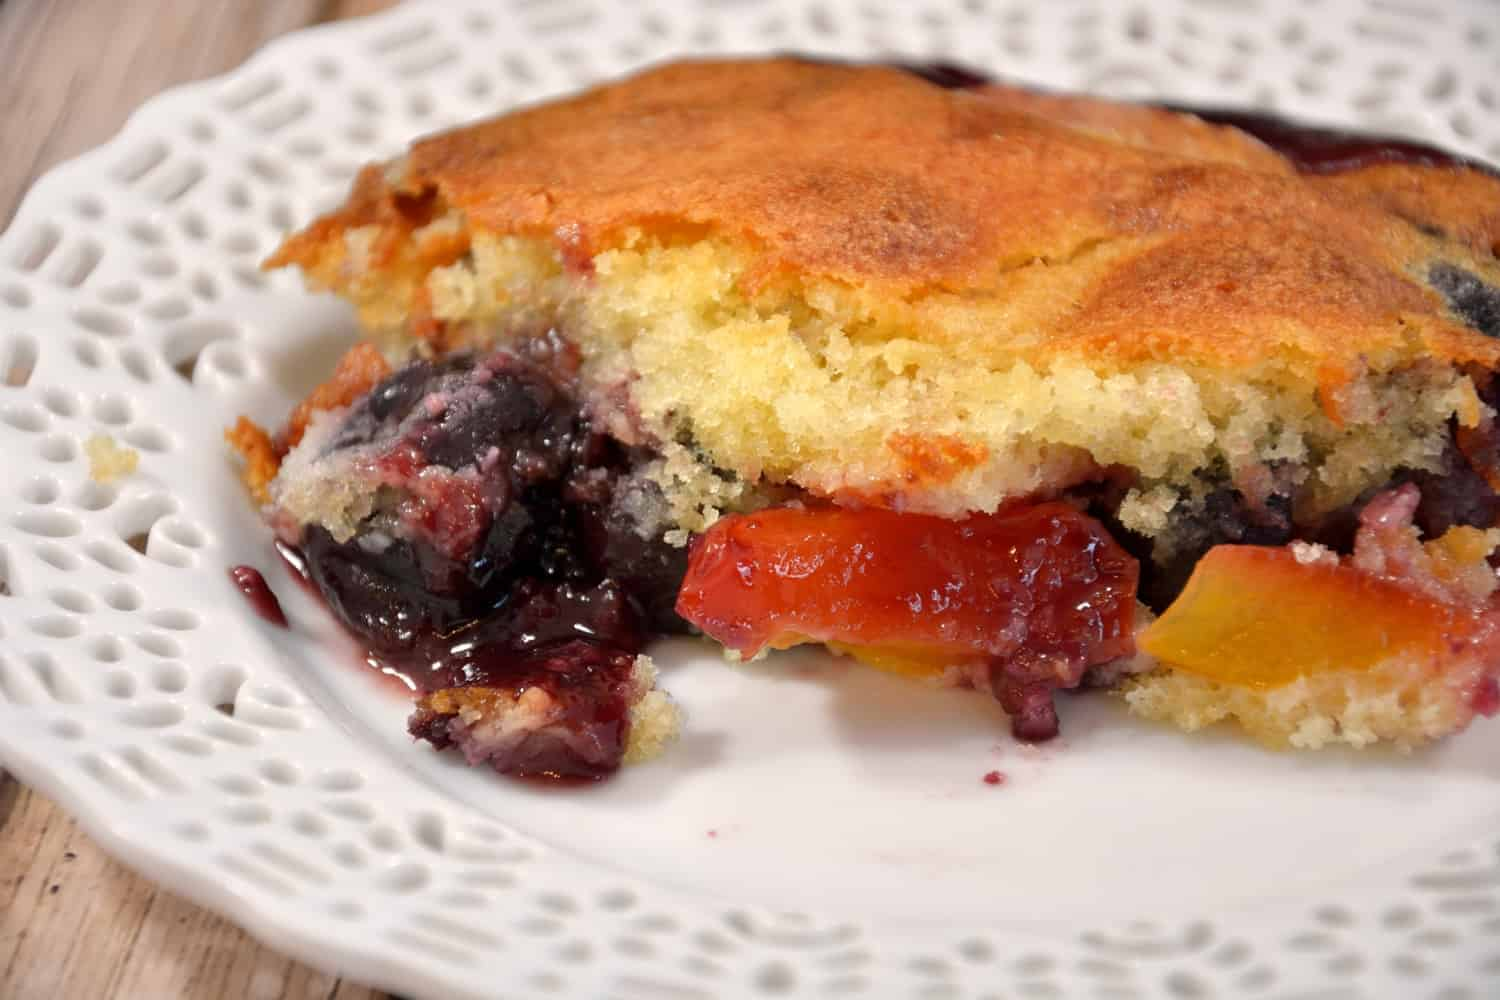 Peach and Cherry Cobbler Recipe is an essential summer dessert with lush stone fruits and an almond essence breading. | #cobbler | www.savoryexperiments.com